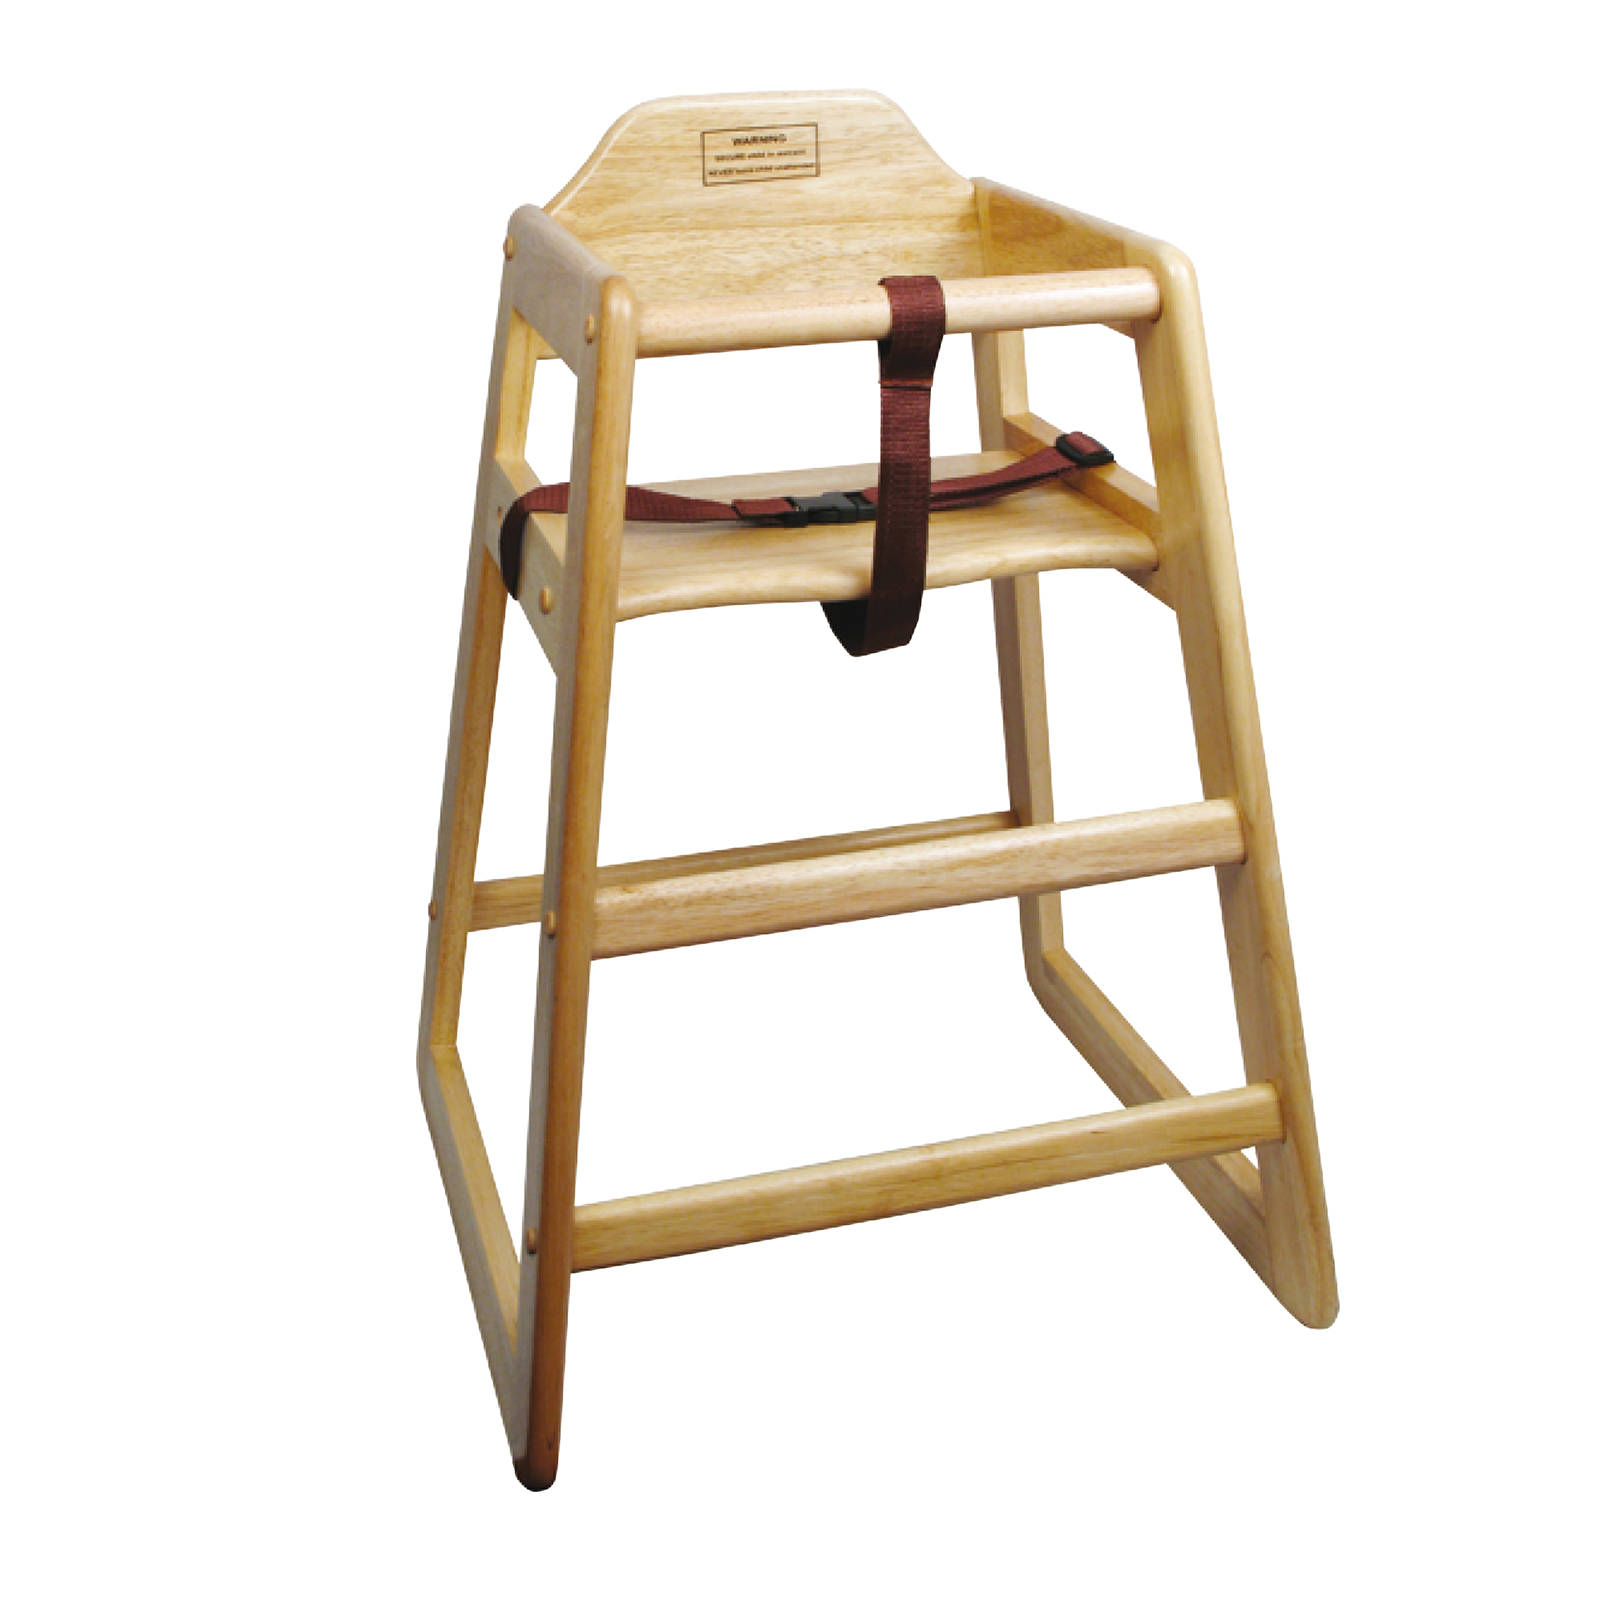 4850-7 Winco CHH-101 high chair, wood